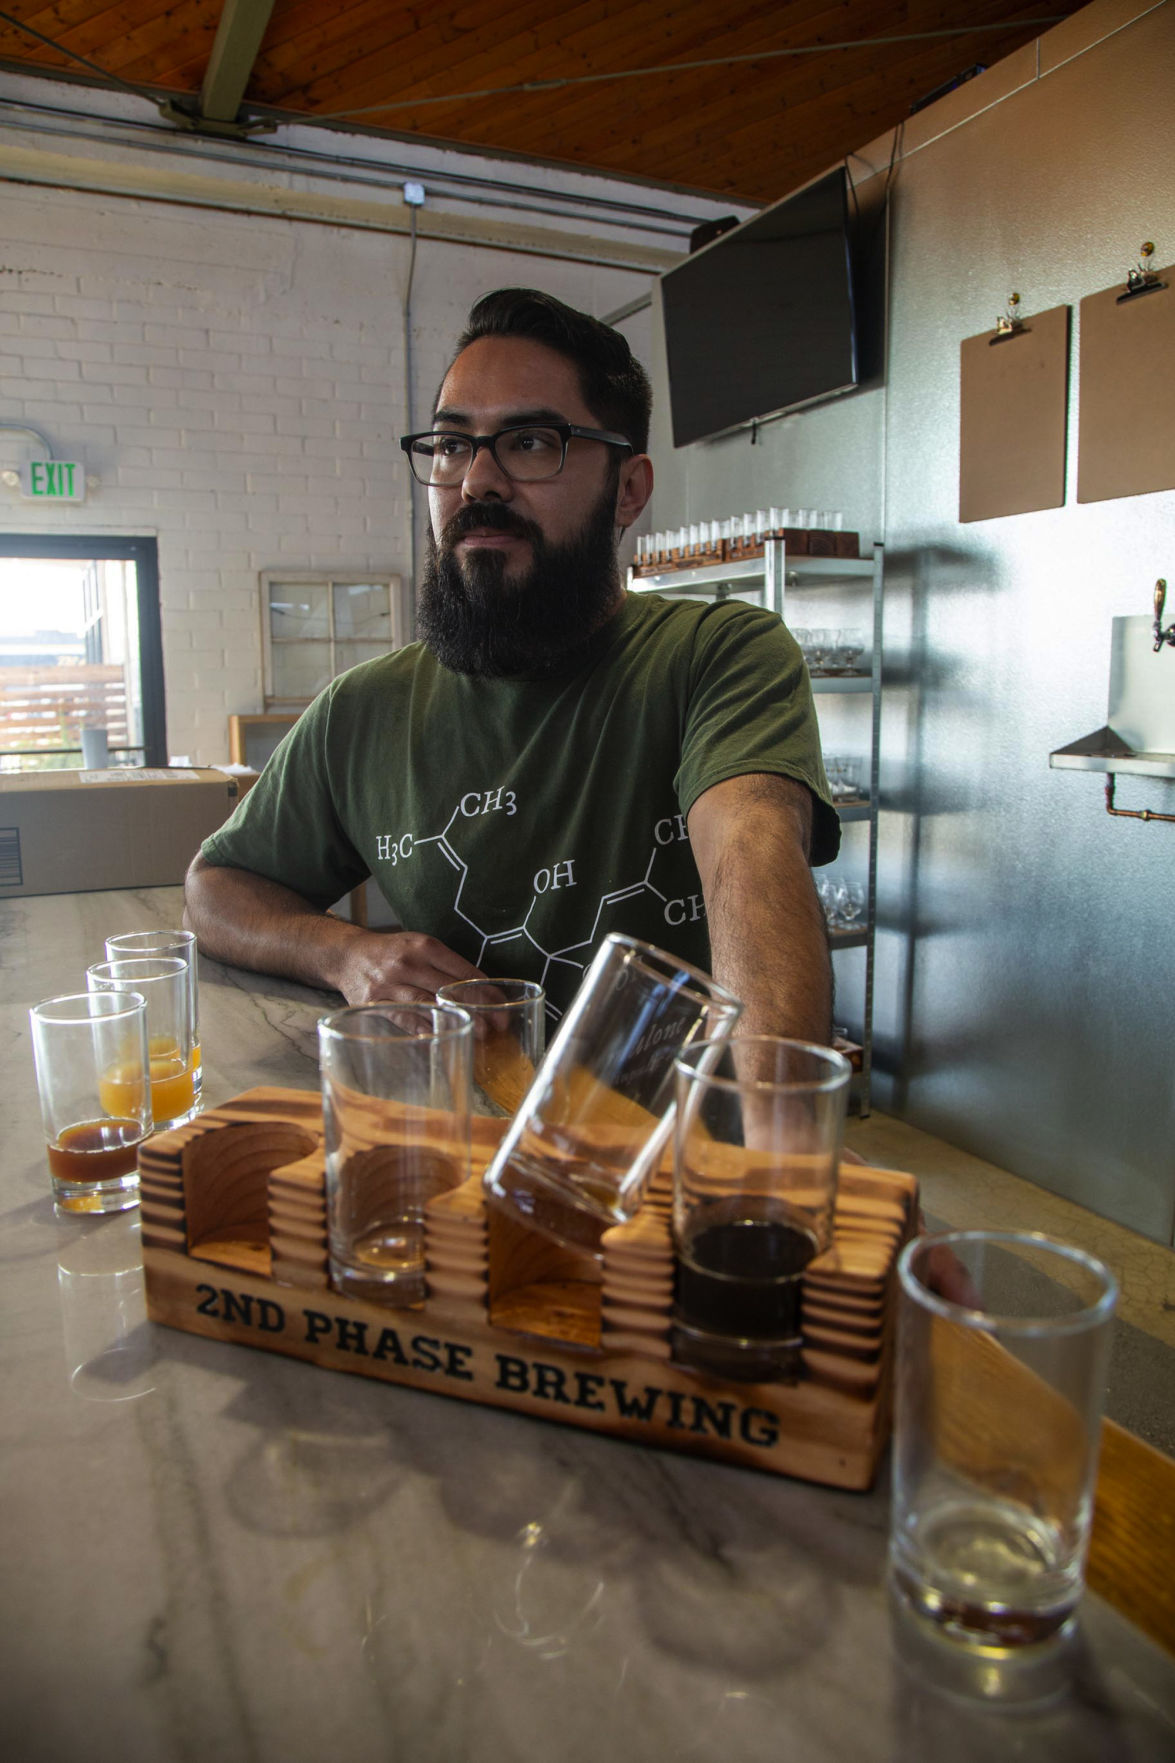 2nd Phase Brewing Frank Miranda